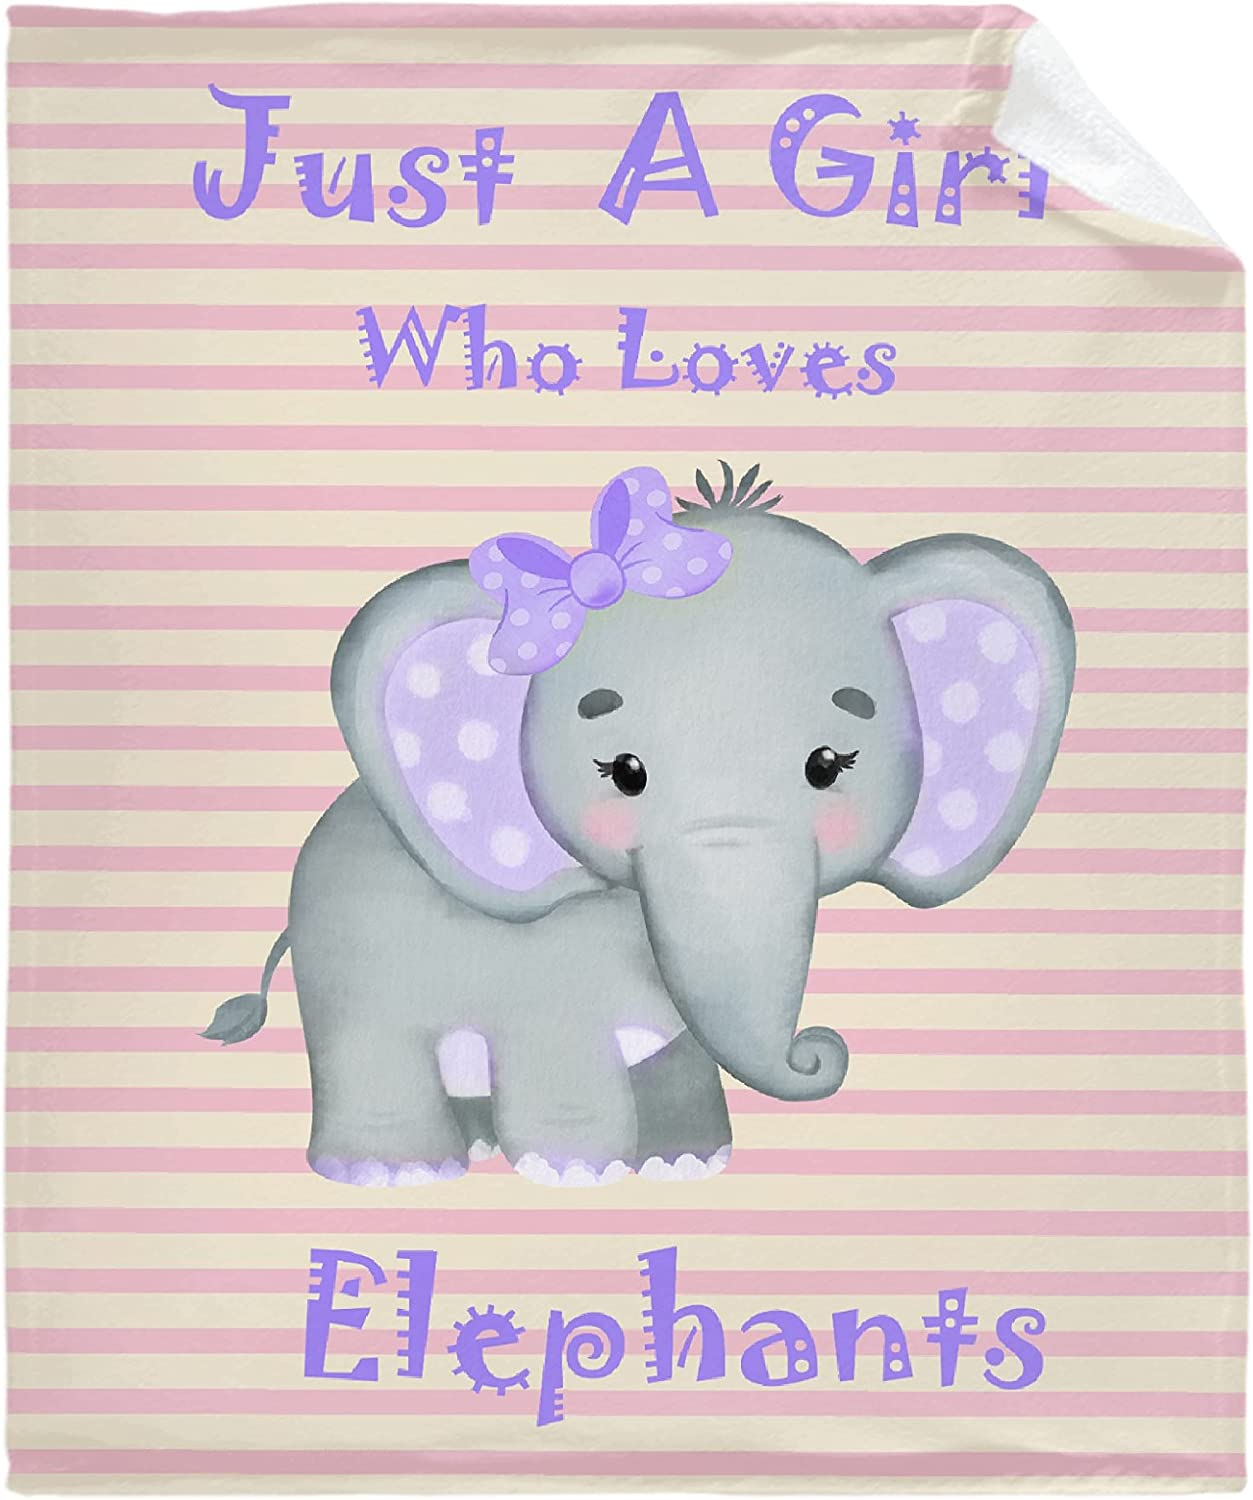 Just A Girl Who Loves Baby Throw Pink Sales Fort Worth Mall of SALE items from new works S Elephants Blanket Yellow